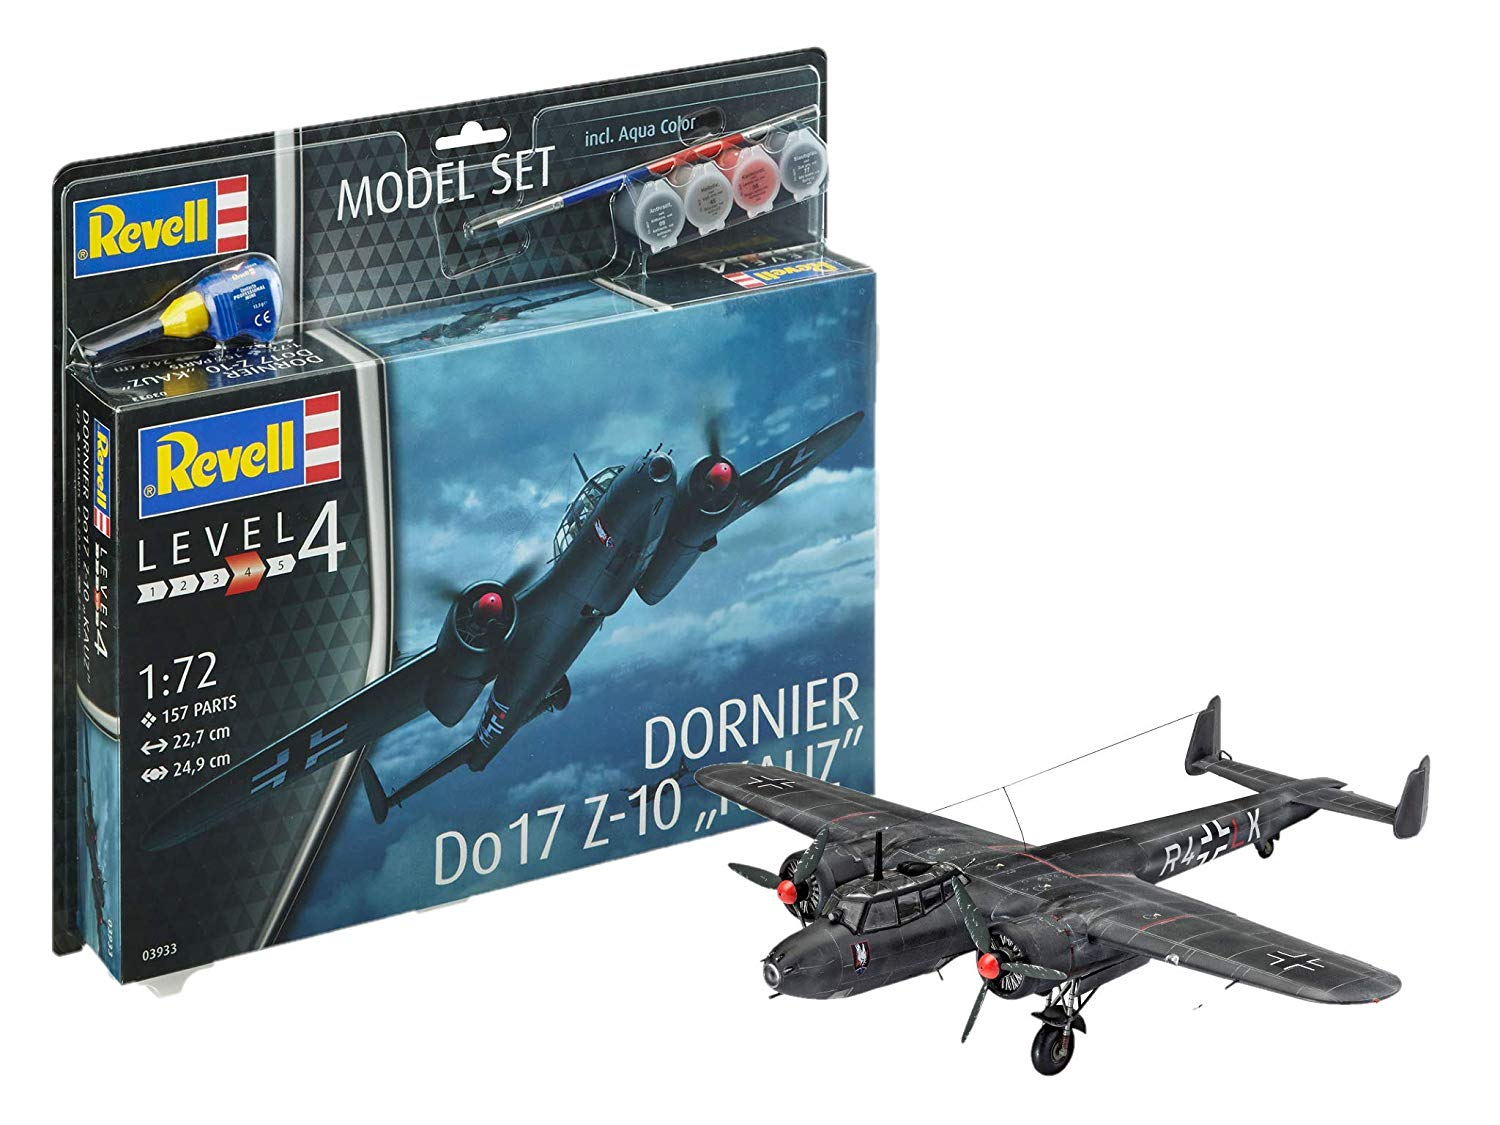 "63933 – Dornier Do17 Z-10 ""Kauz"" Model Set,with paints, glue and paintbrush, 1:72 Scale"